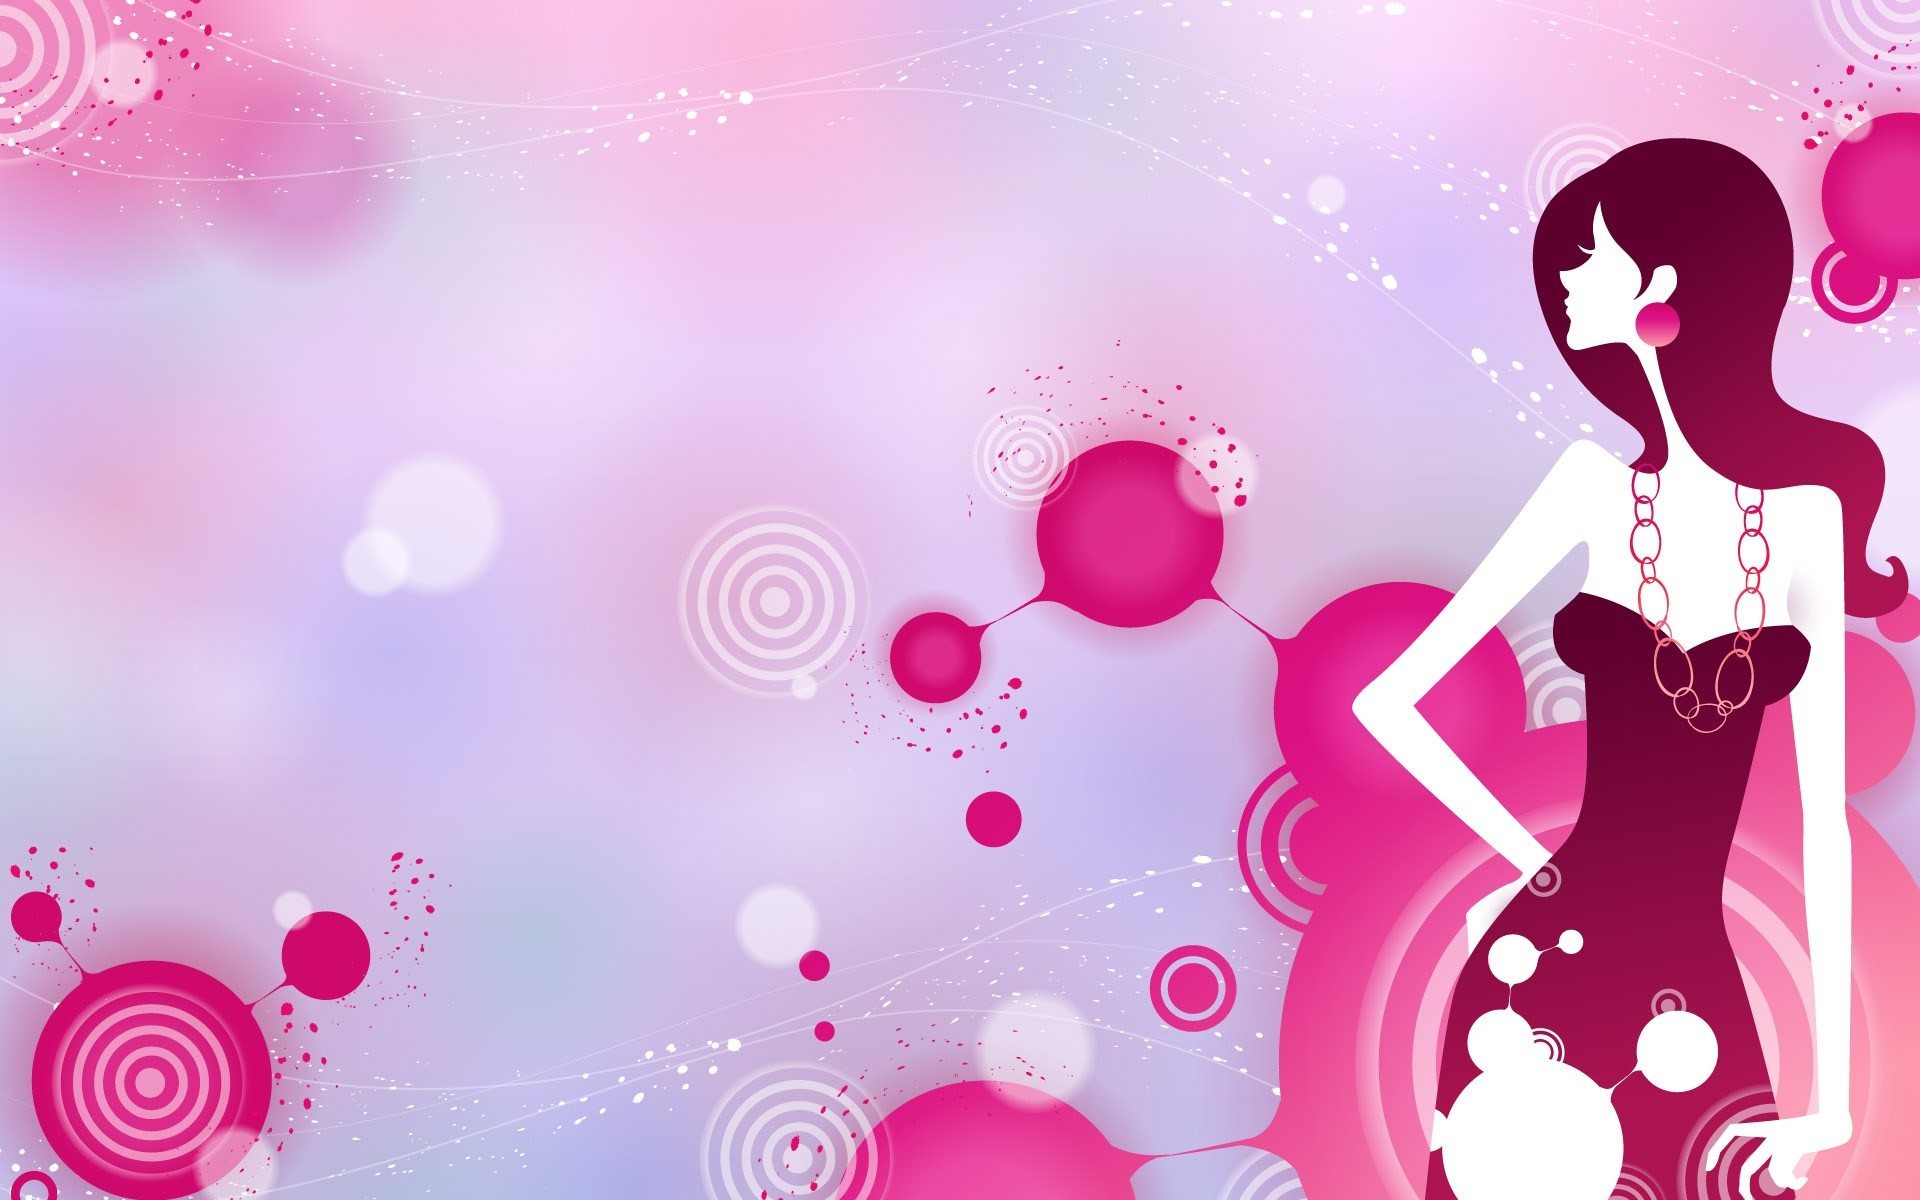 … Cool girly wallpapers Free download best Latest 3D HD desktop  wallpapers background Wide Most Popular Images